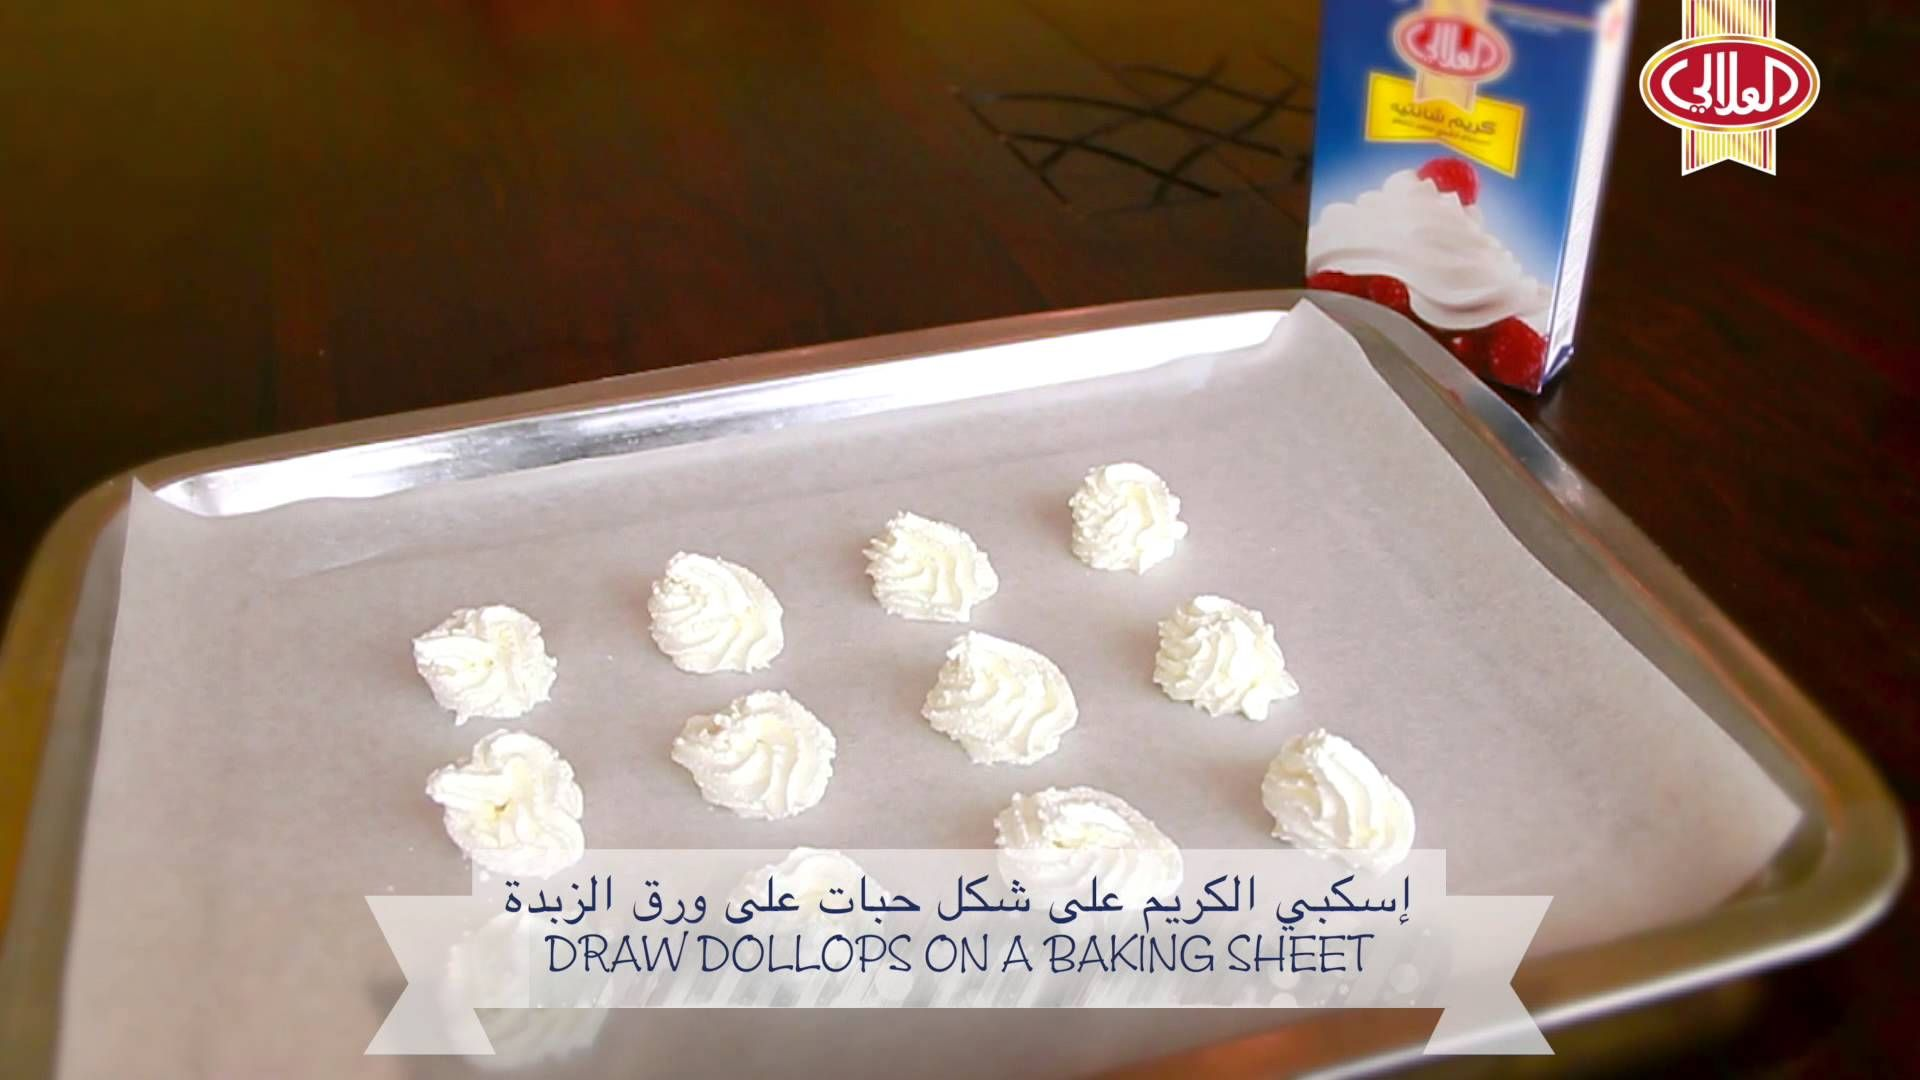 Whipped Cream Dollops حبات الكريم شانتيه Baking Takeout Container Dishes